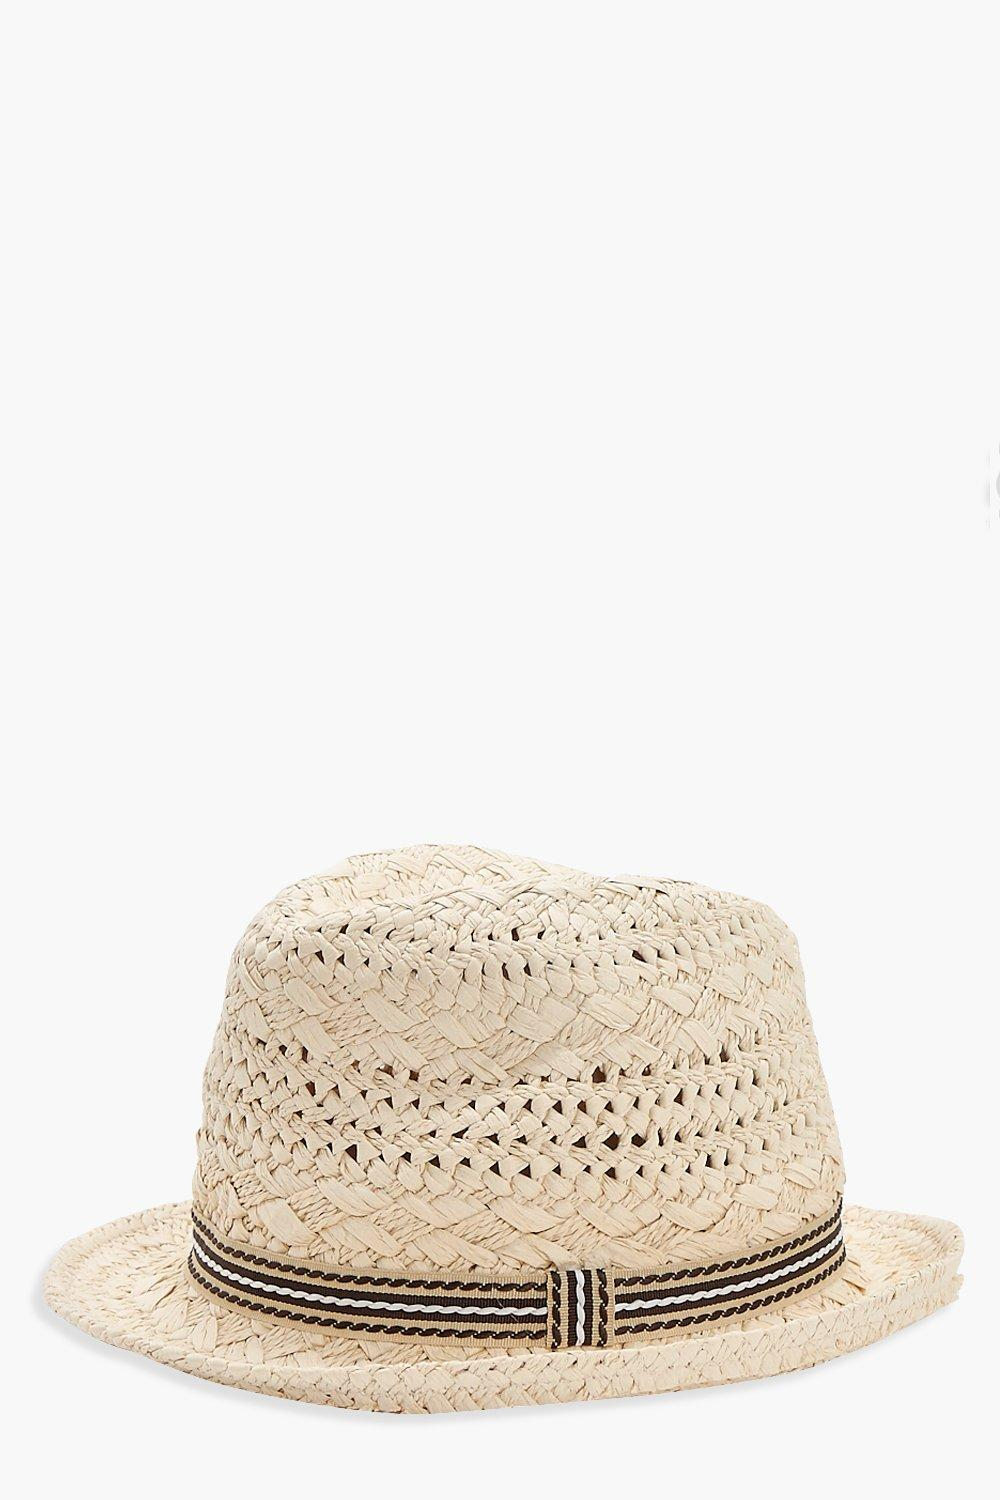 Friendship Bold Straw Hat - cream - Lola Friendshi